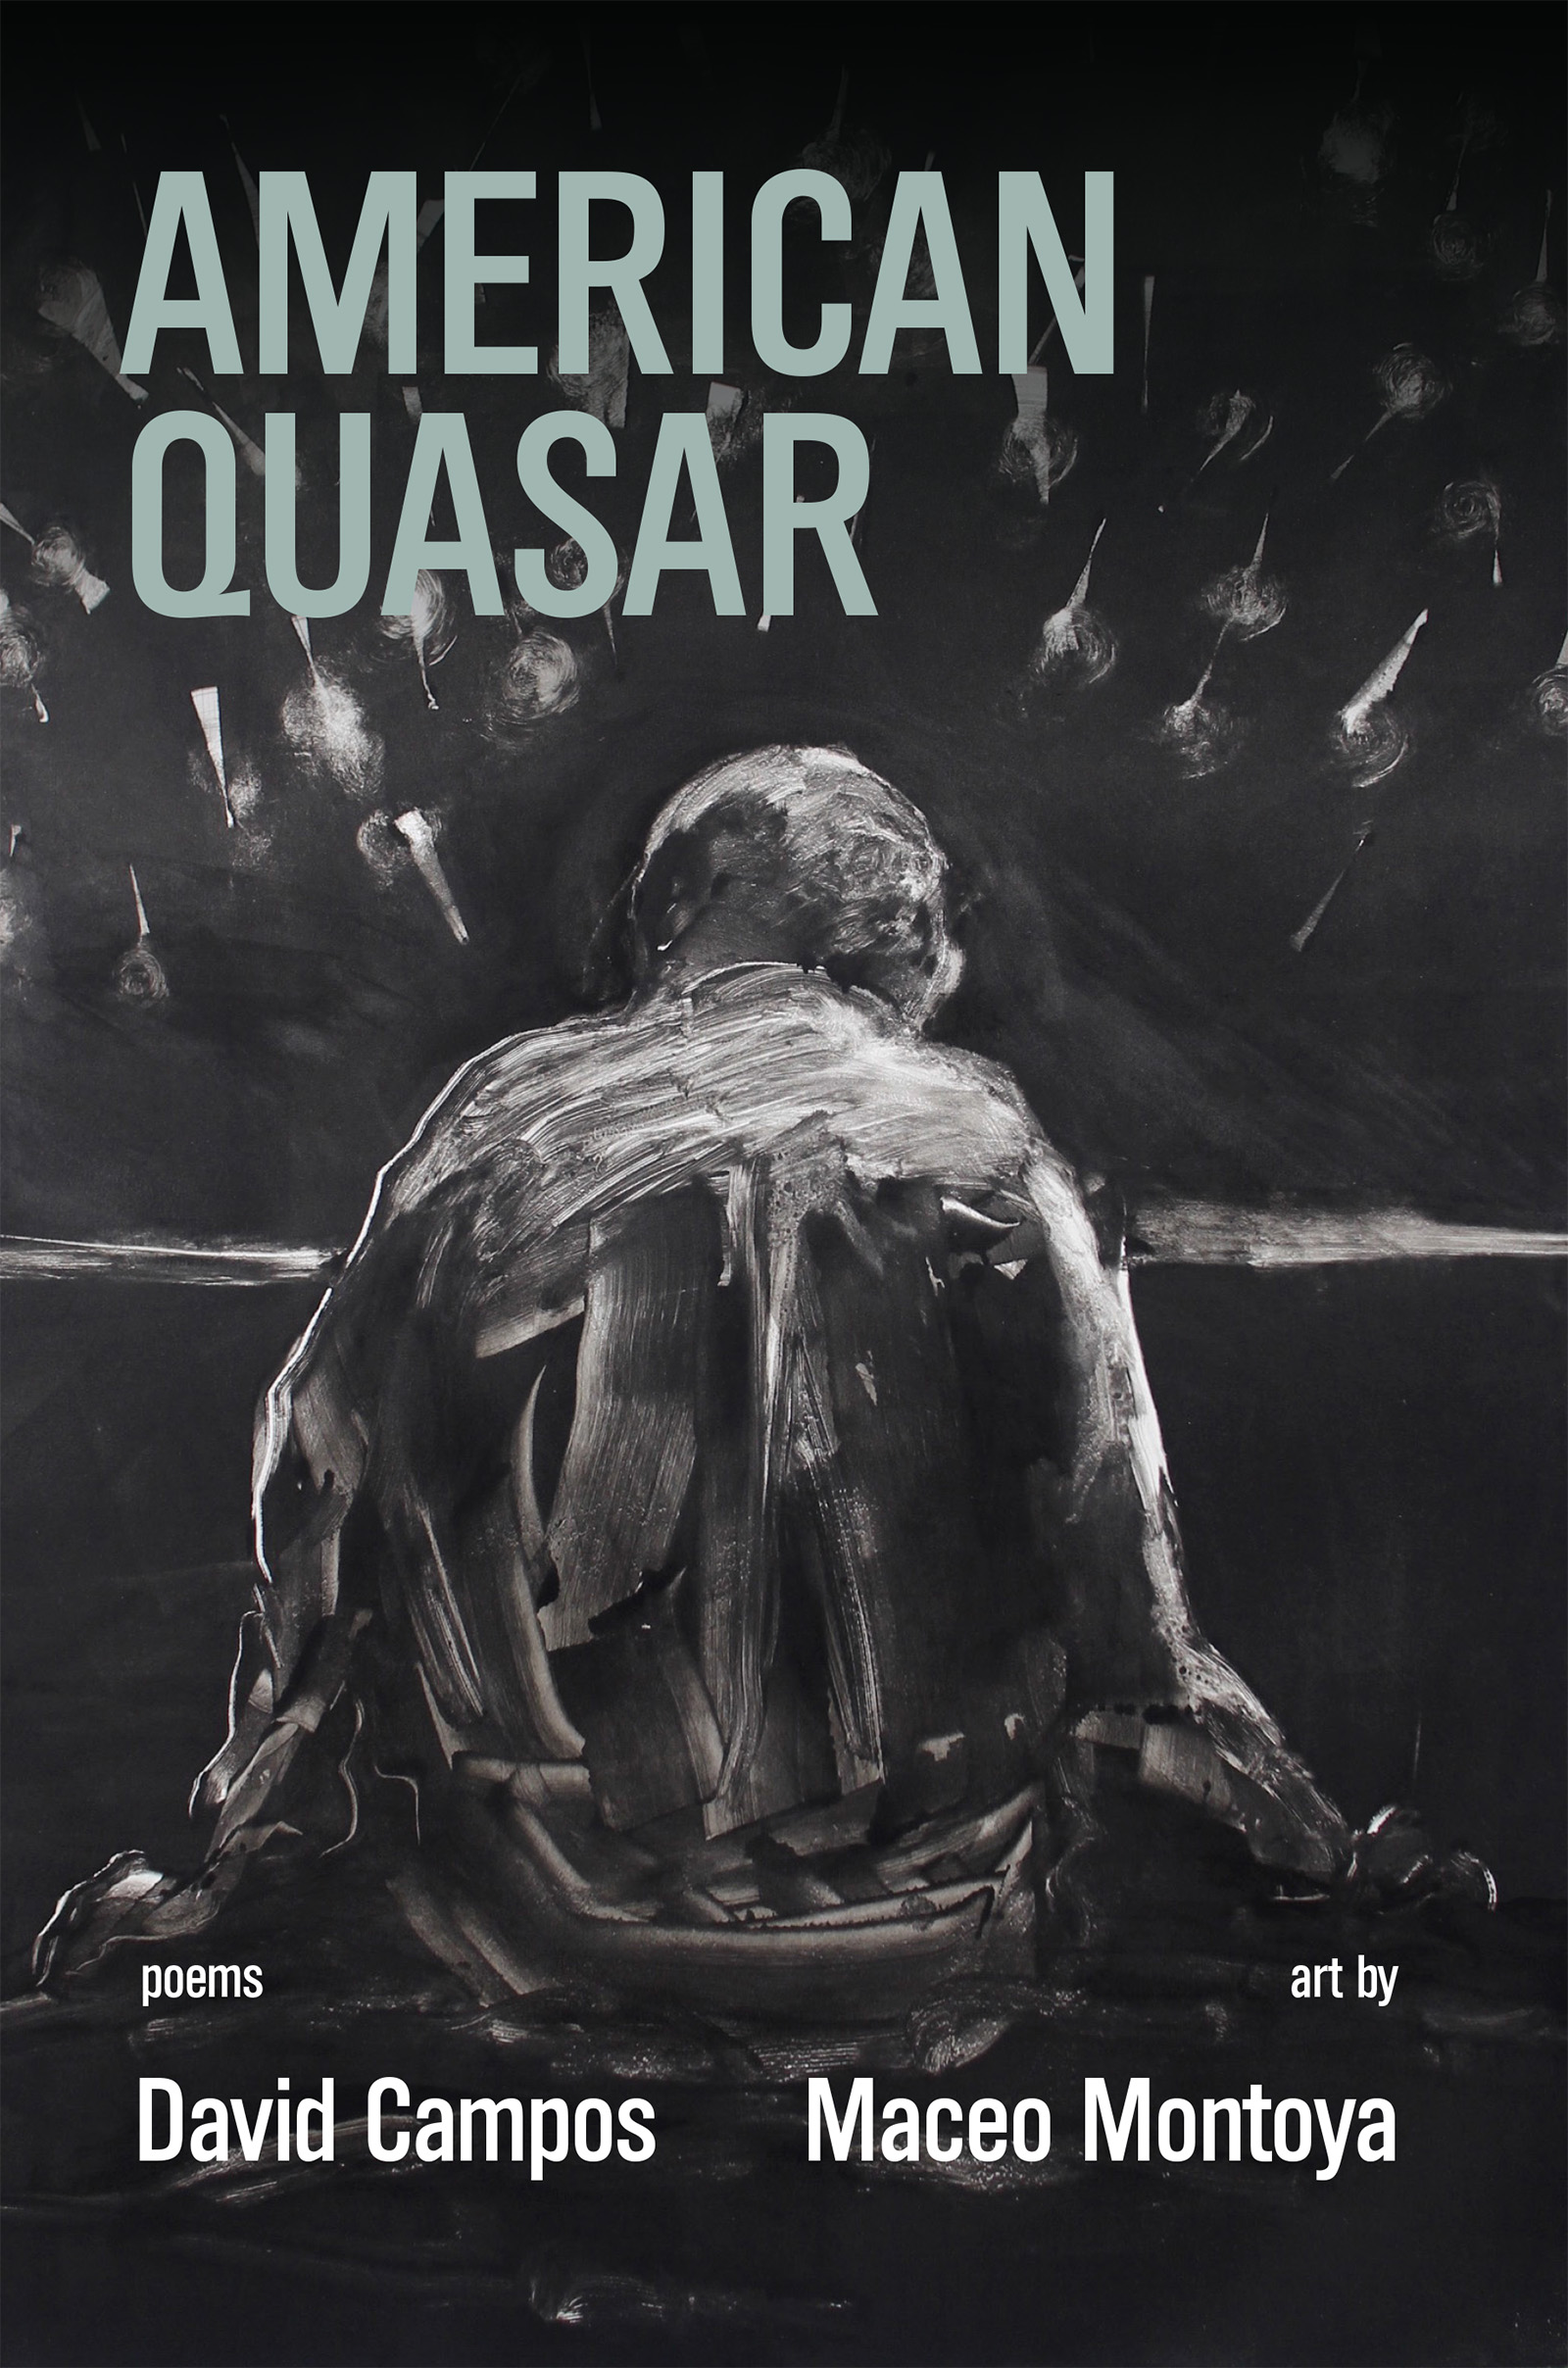 An abstract painting of a white outline of a man's back with his head facing downwards and script that reads American Quasar poems by David Campos and art by Maceo Montoya.